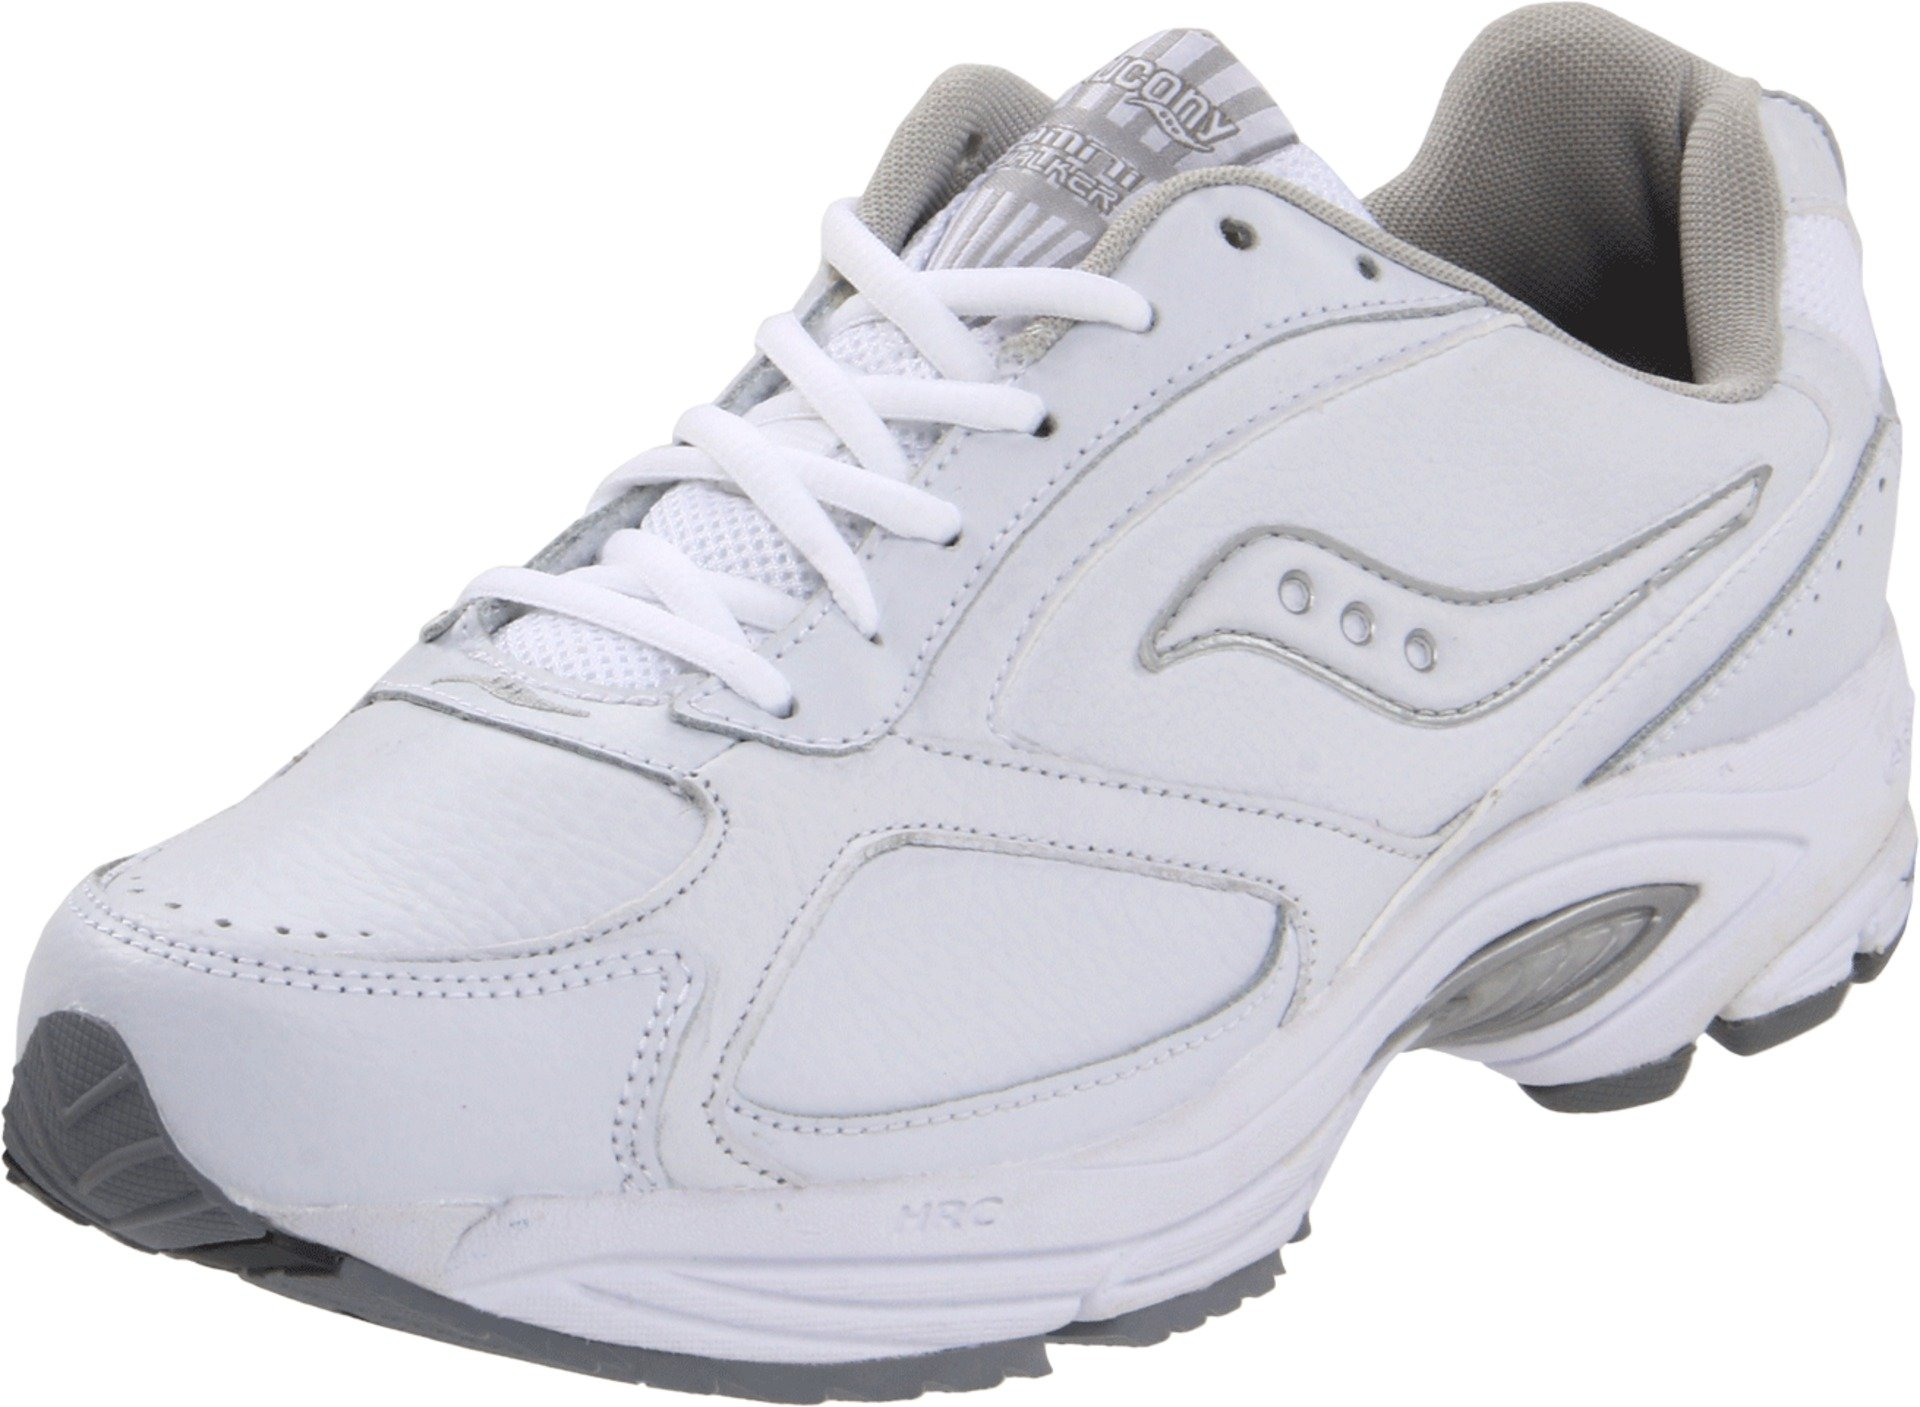 Saucony Men's Grid Omni Walker Walking Shoe, White/Silver, 12 D-Medium by Saucony